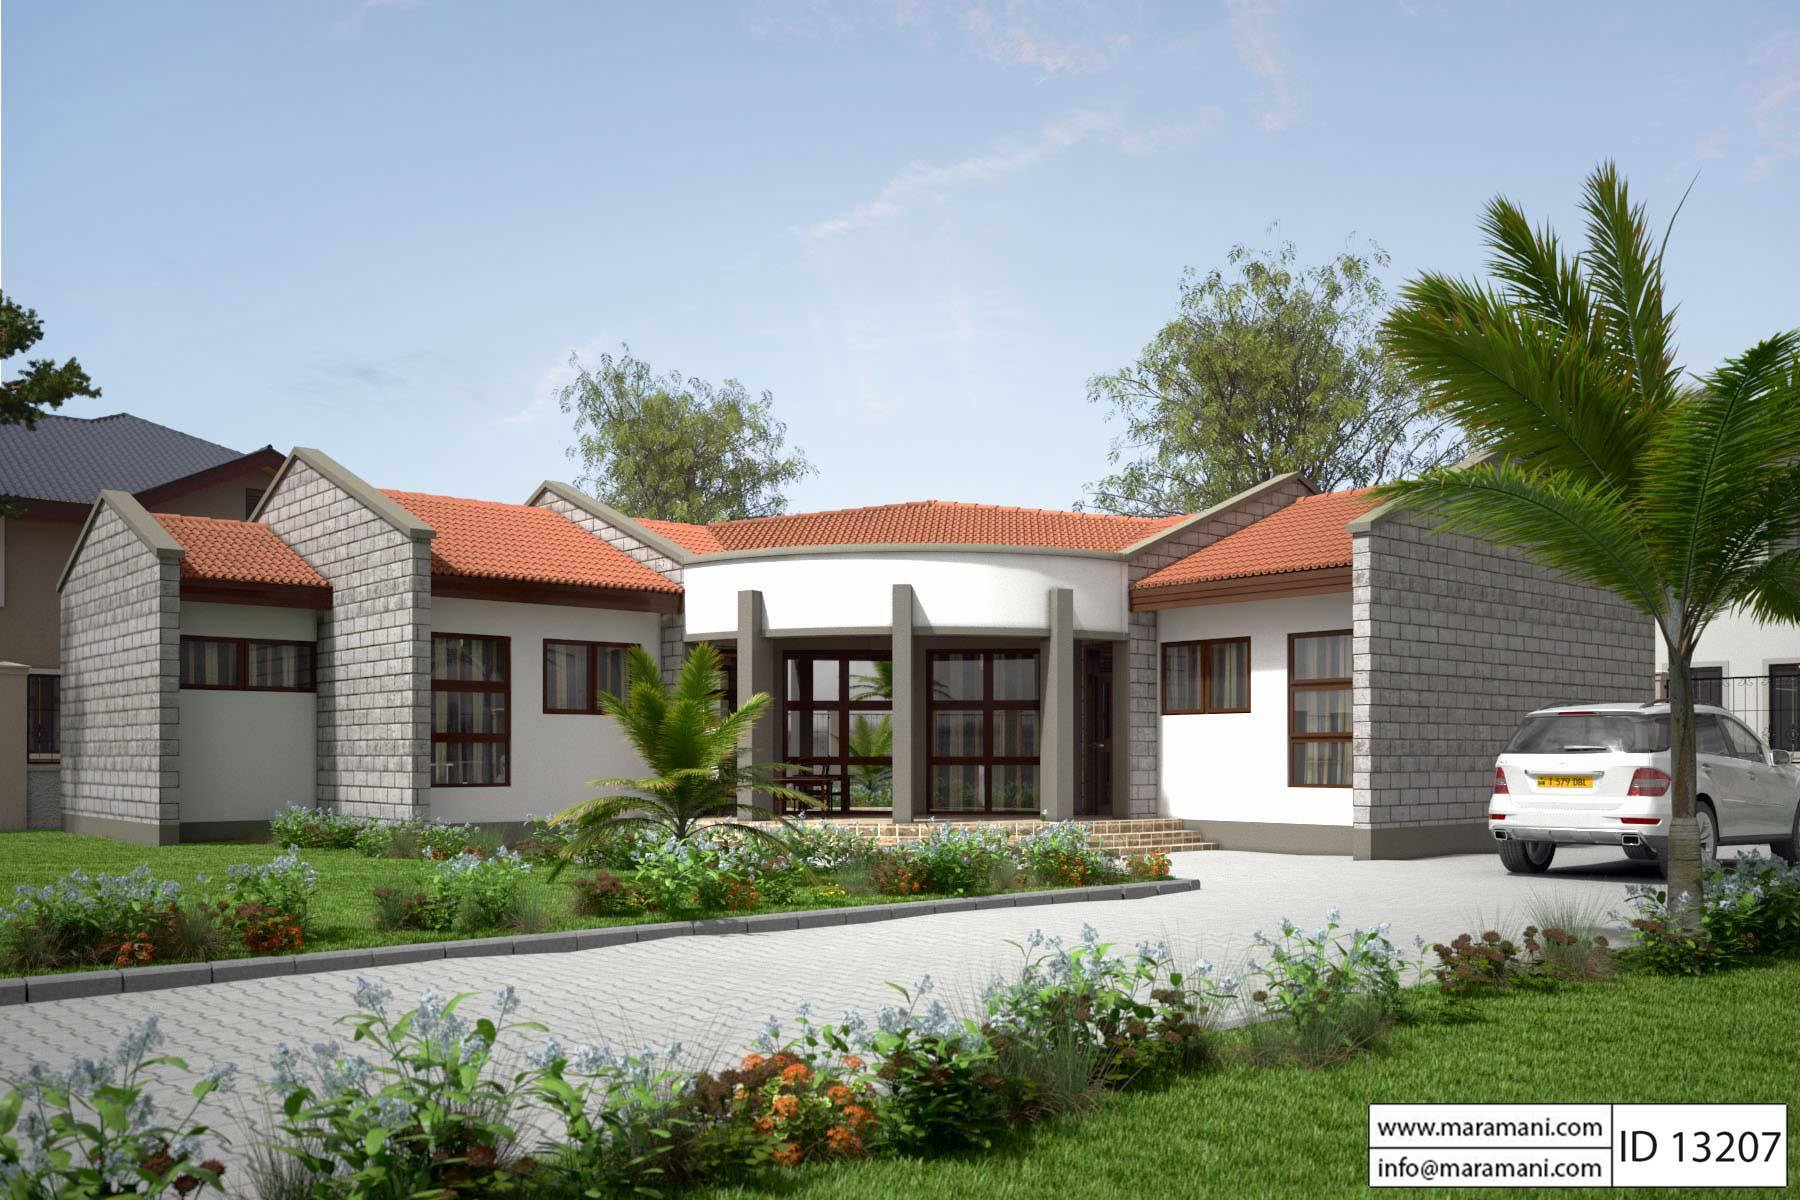 Budget Modern 3 Bedroom House Design ID 13207 Plans by Maramani